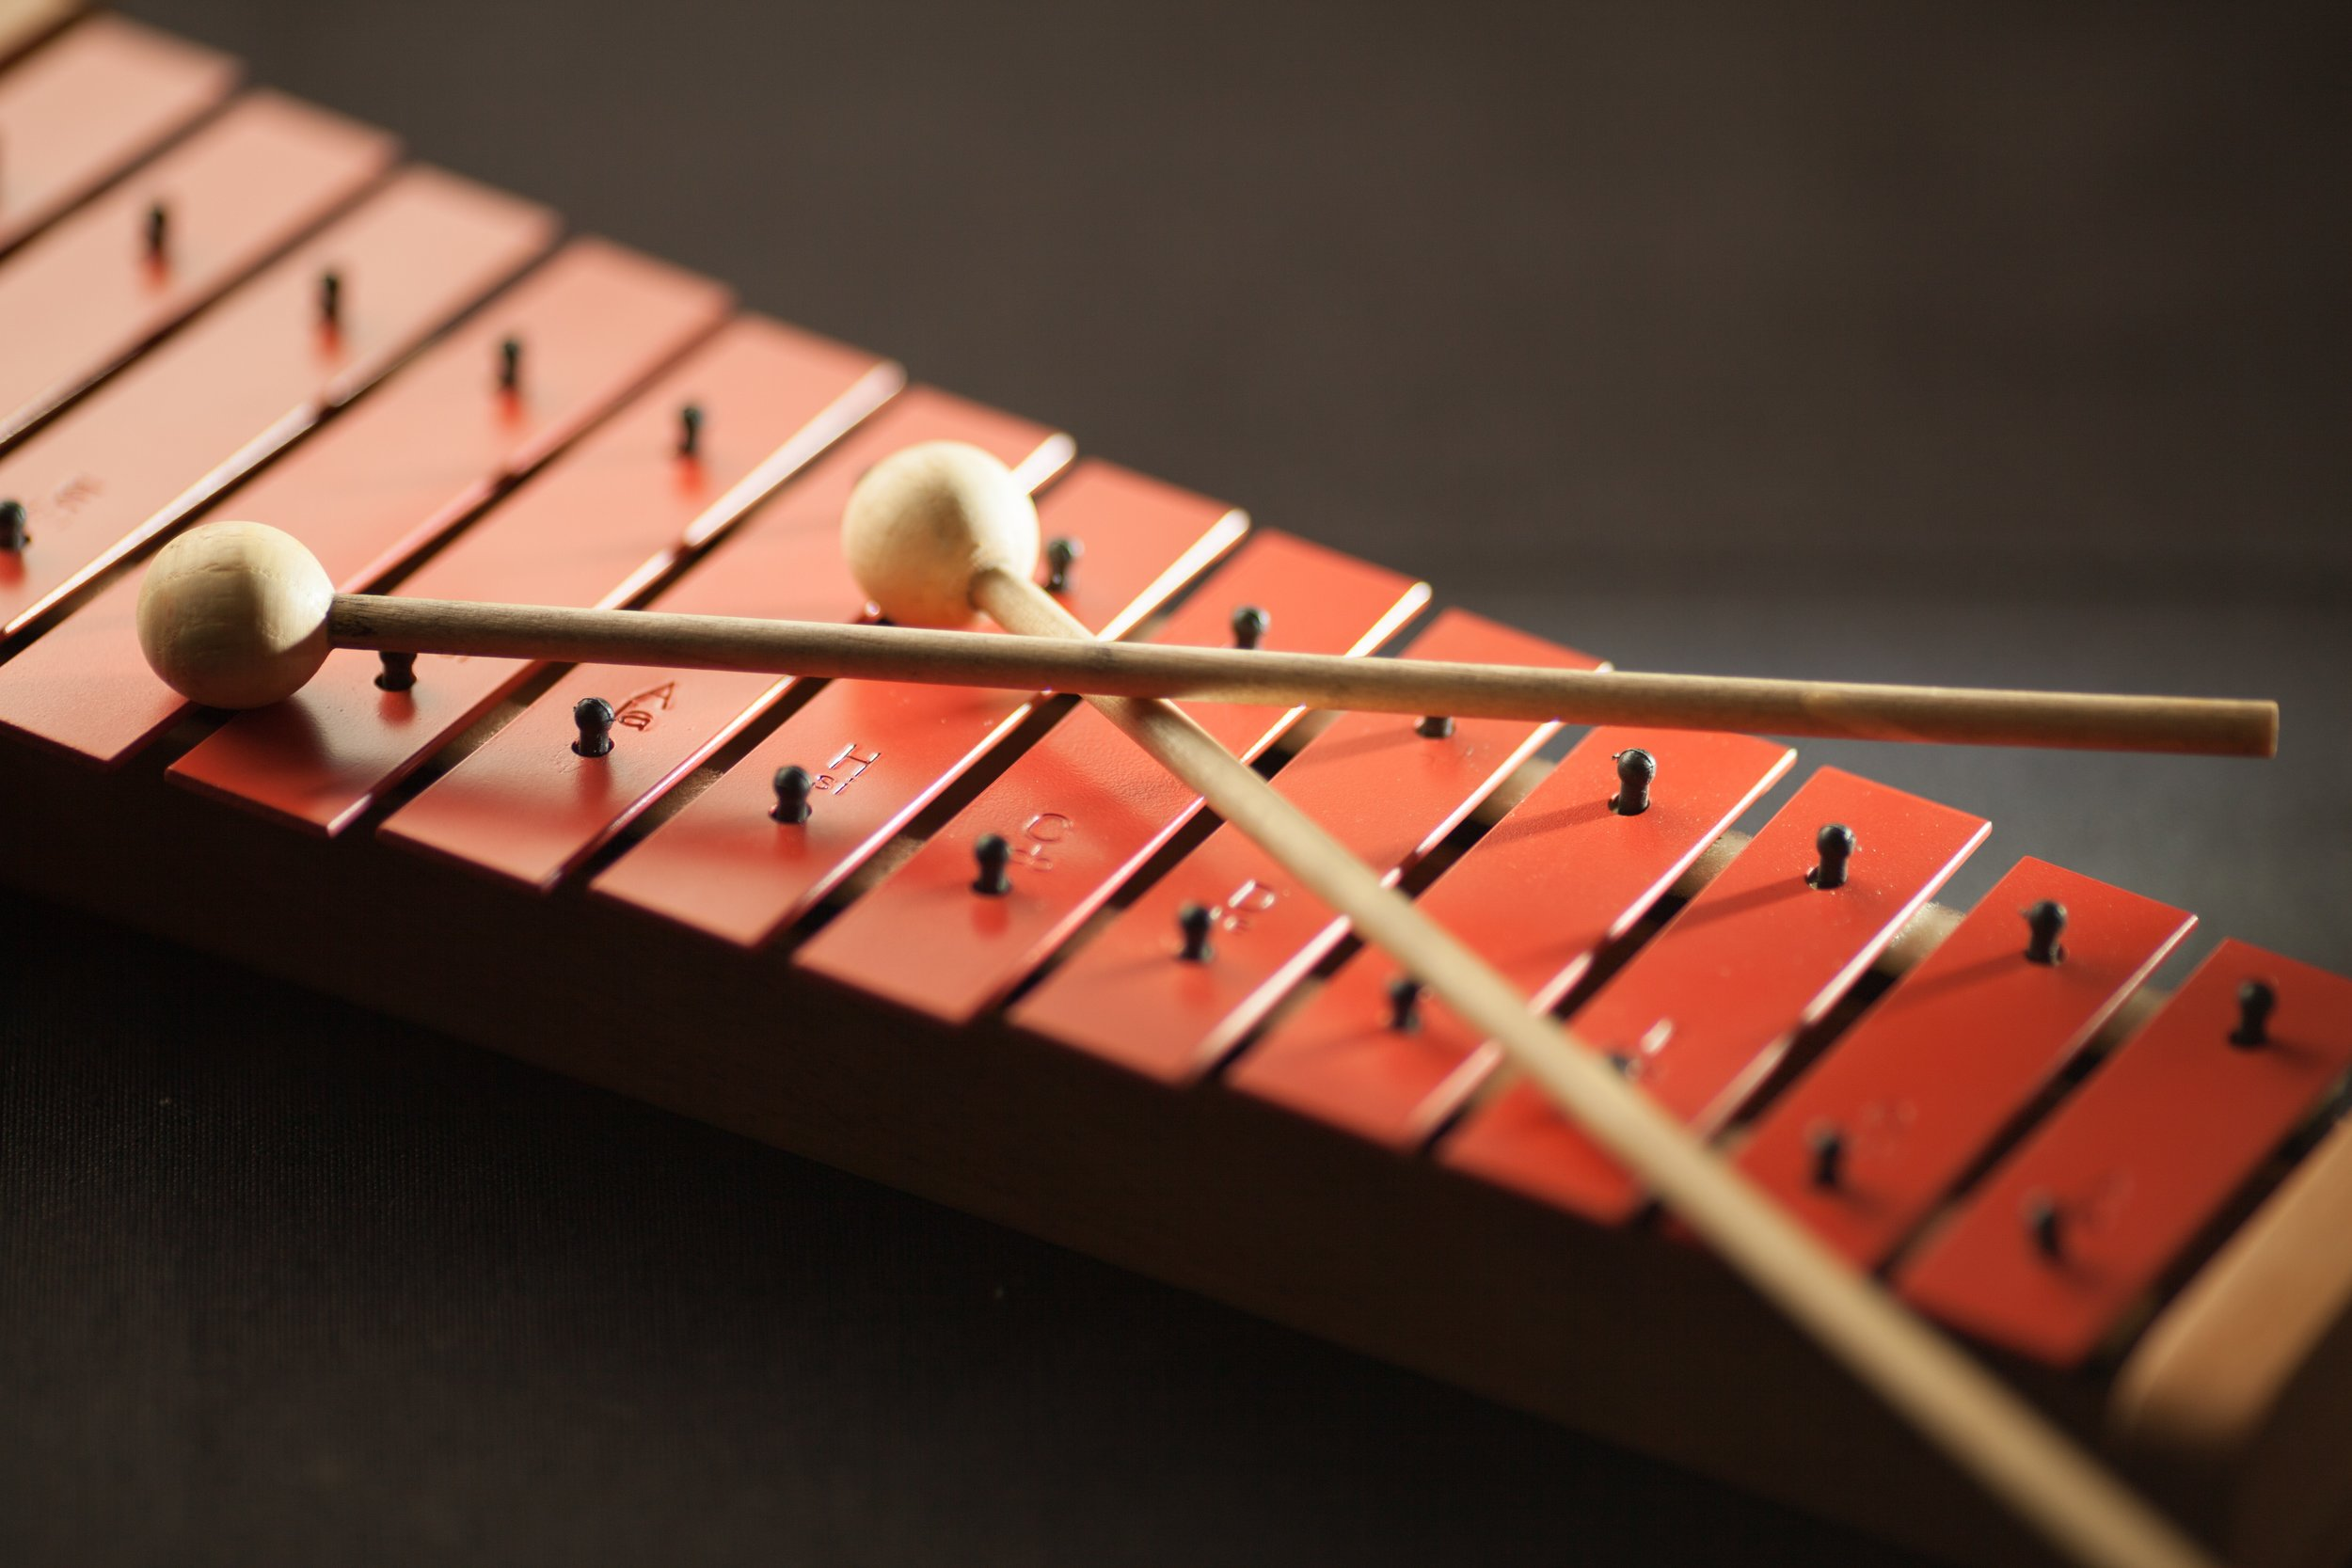 What could music therapy services look like at your agency? -